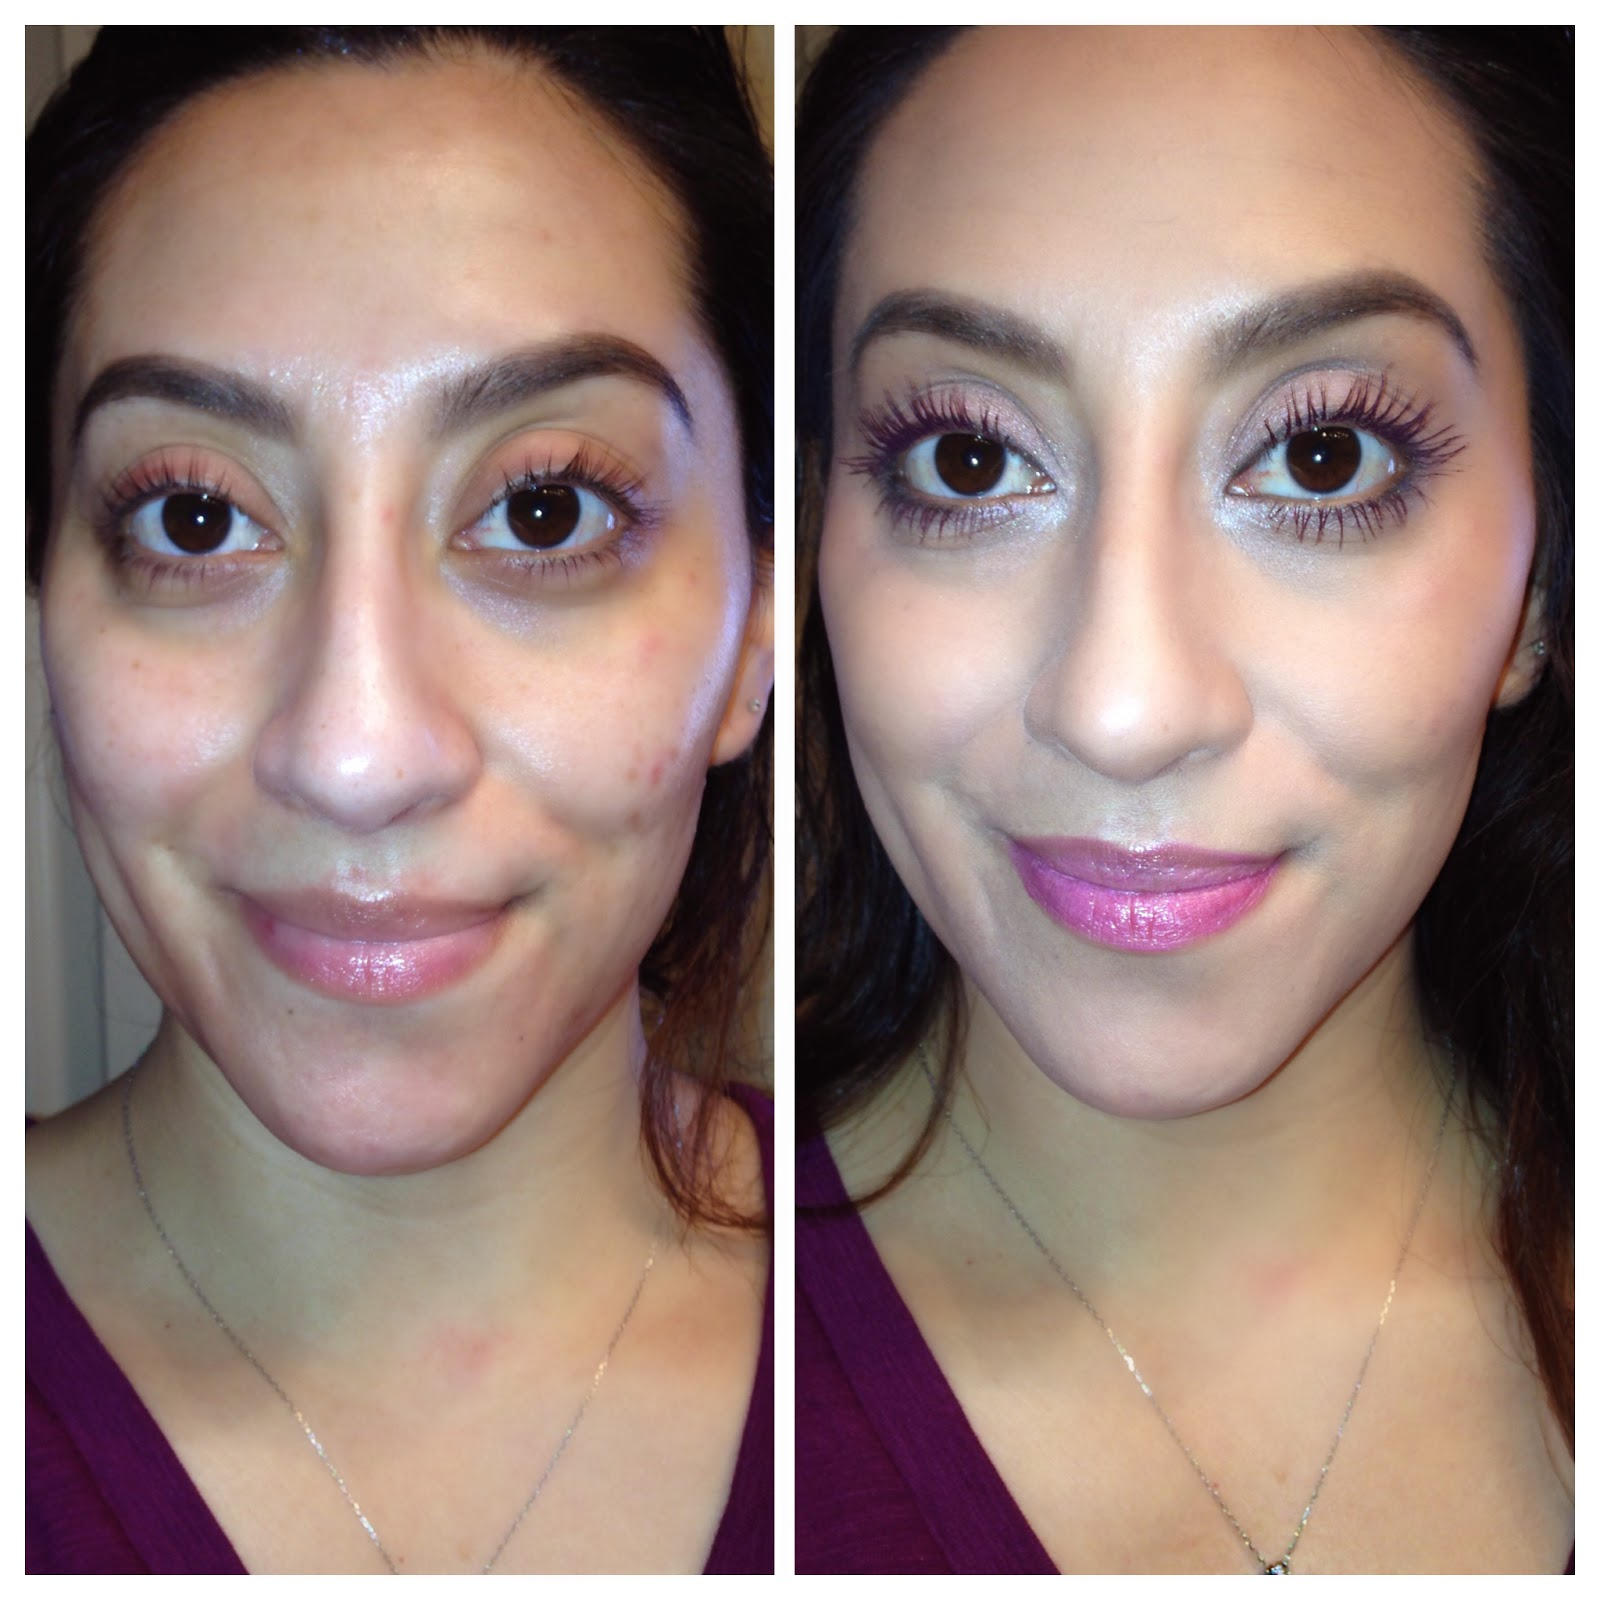 Clinique Beyond Perfecting Foundation and Concealer before/after